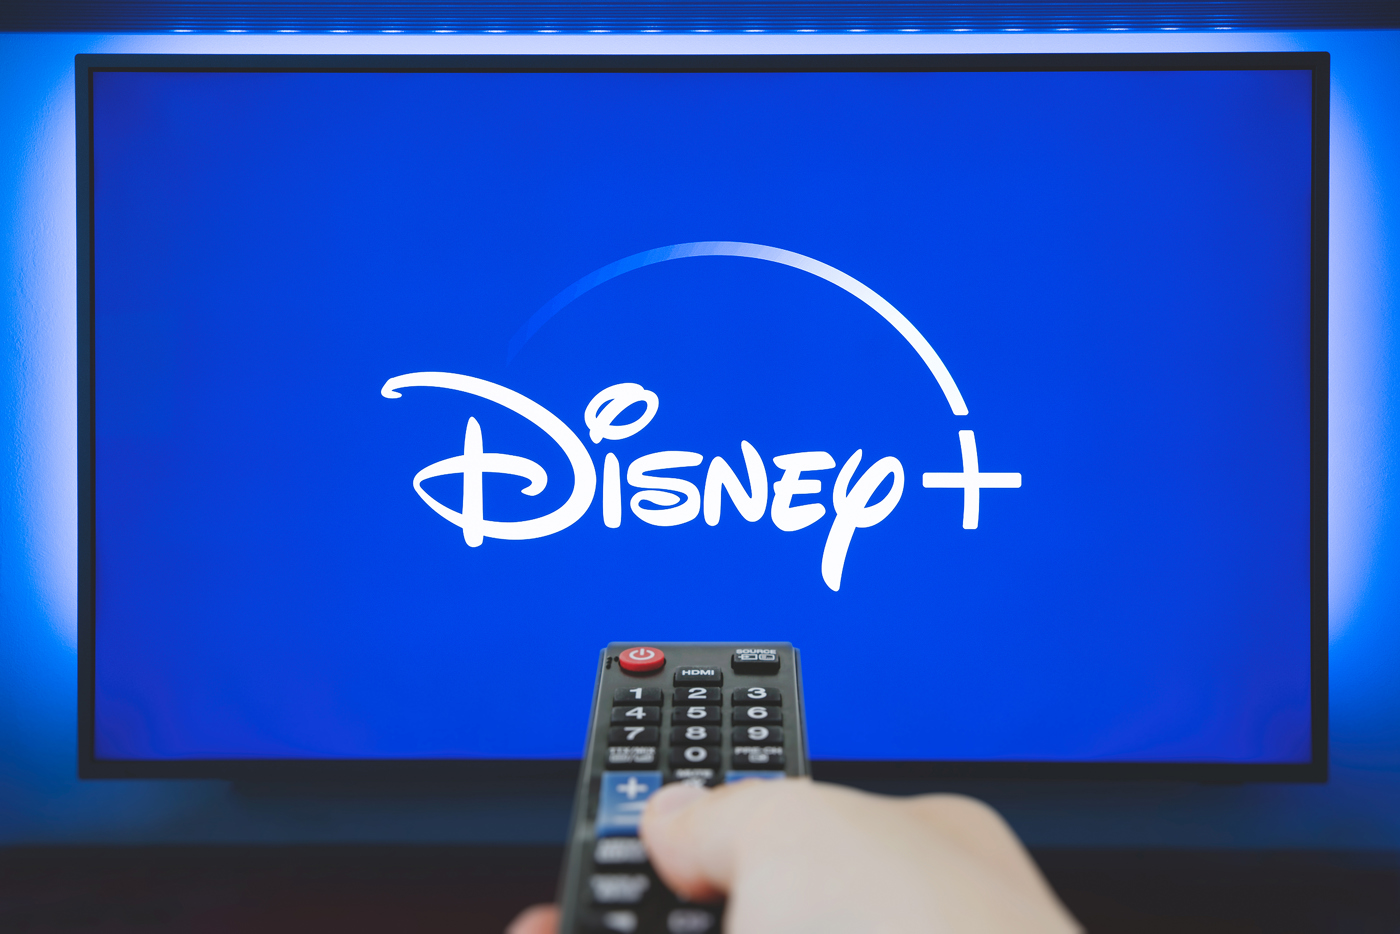 Disney DIS stock news and analysis